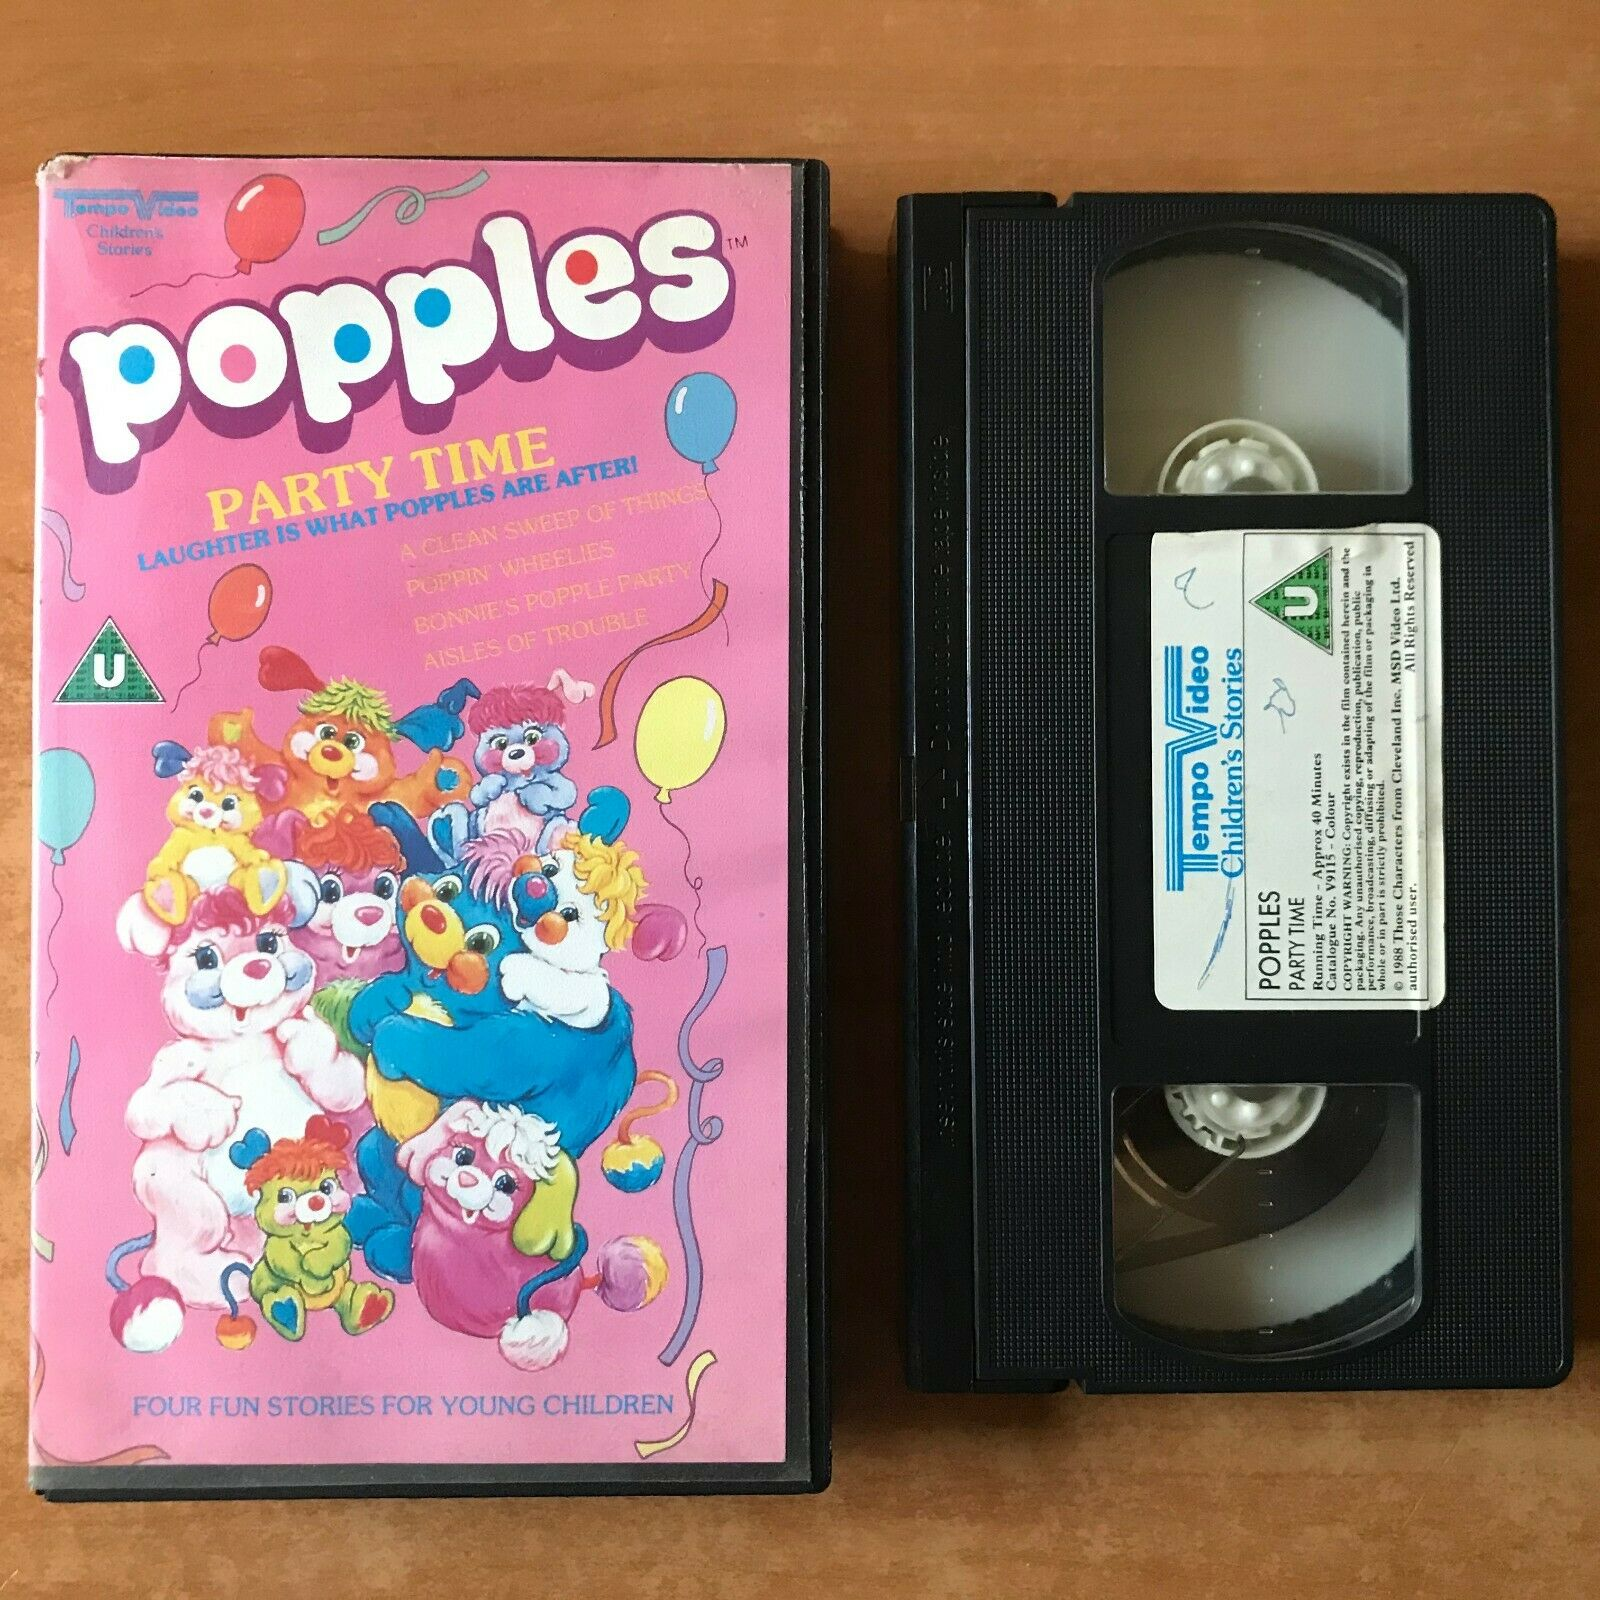 Popples Party Time [Tempo Video]: Poppin' Wheelies - Animated - Children's - VHS